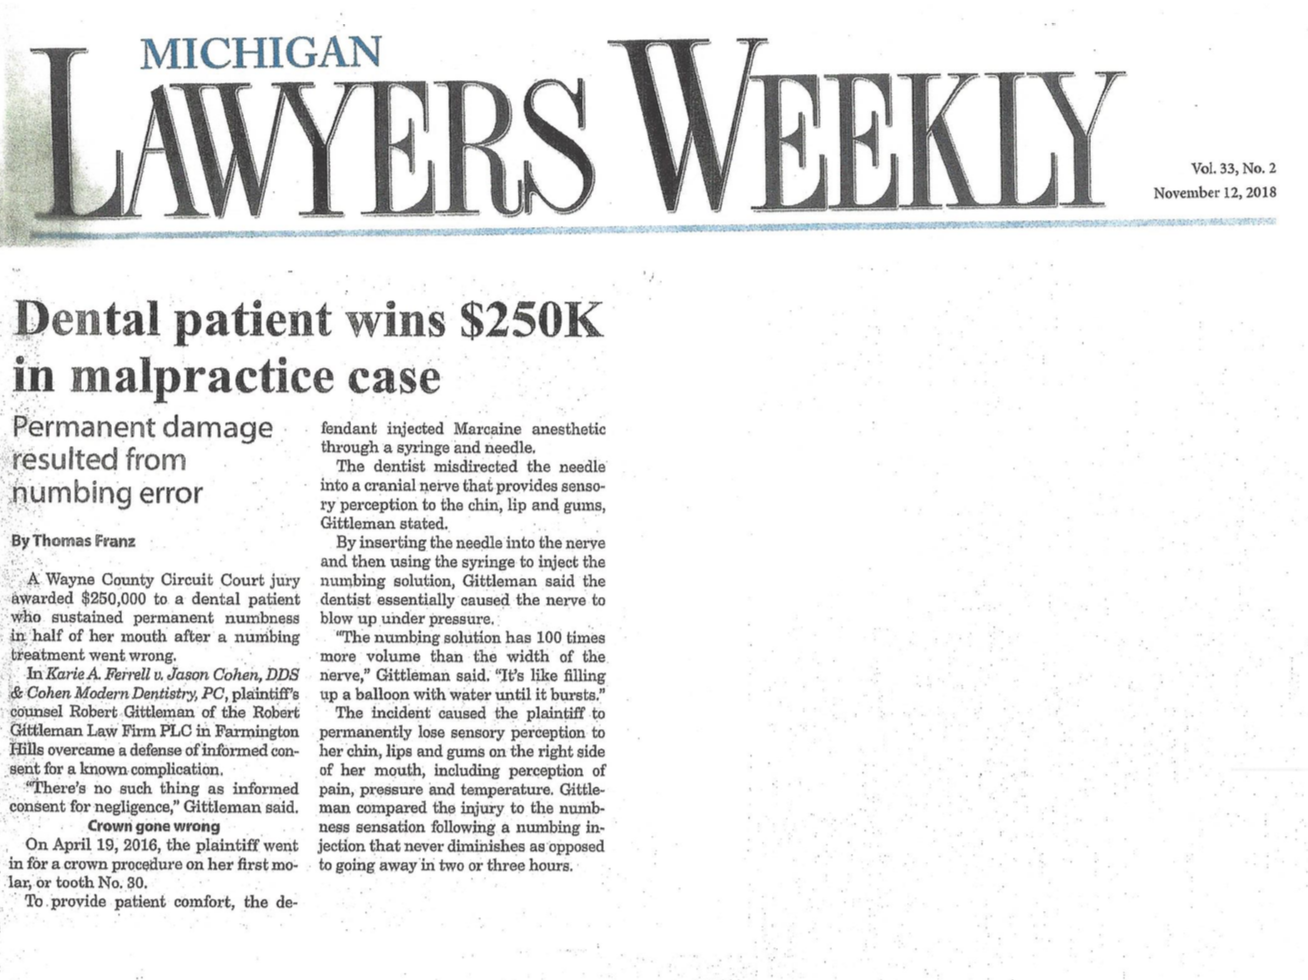 Dental malpractice attorney Robert Gittleman in the news